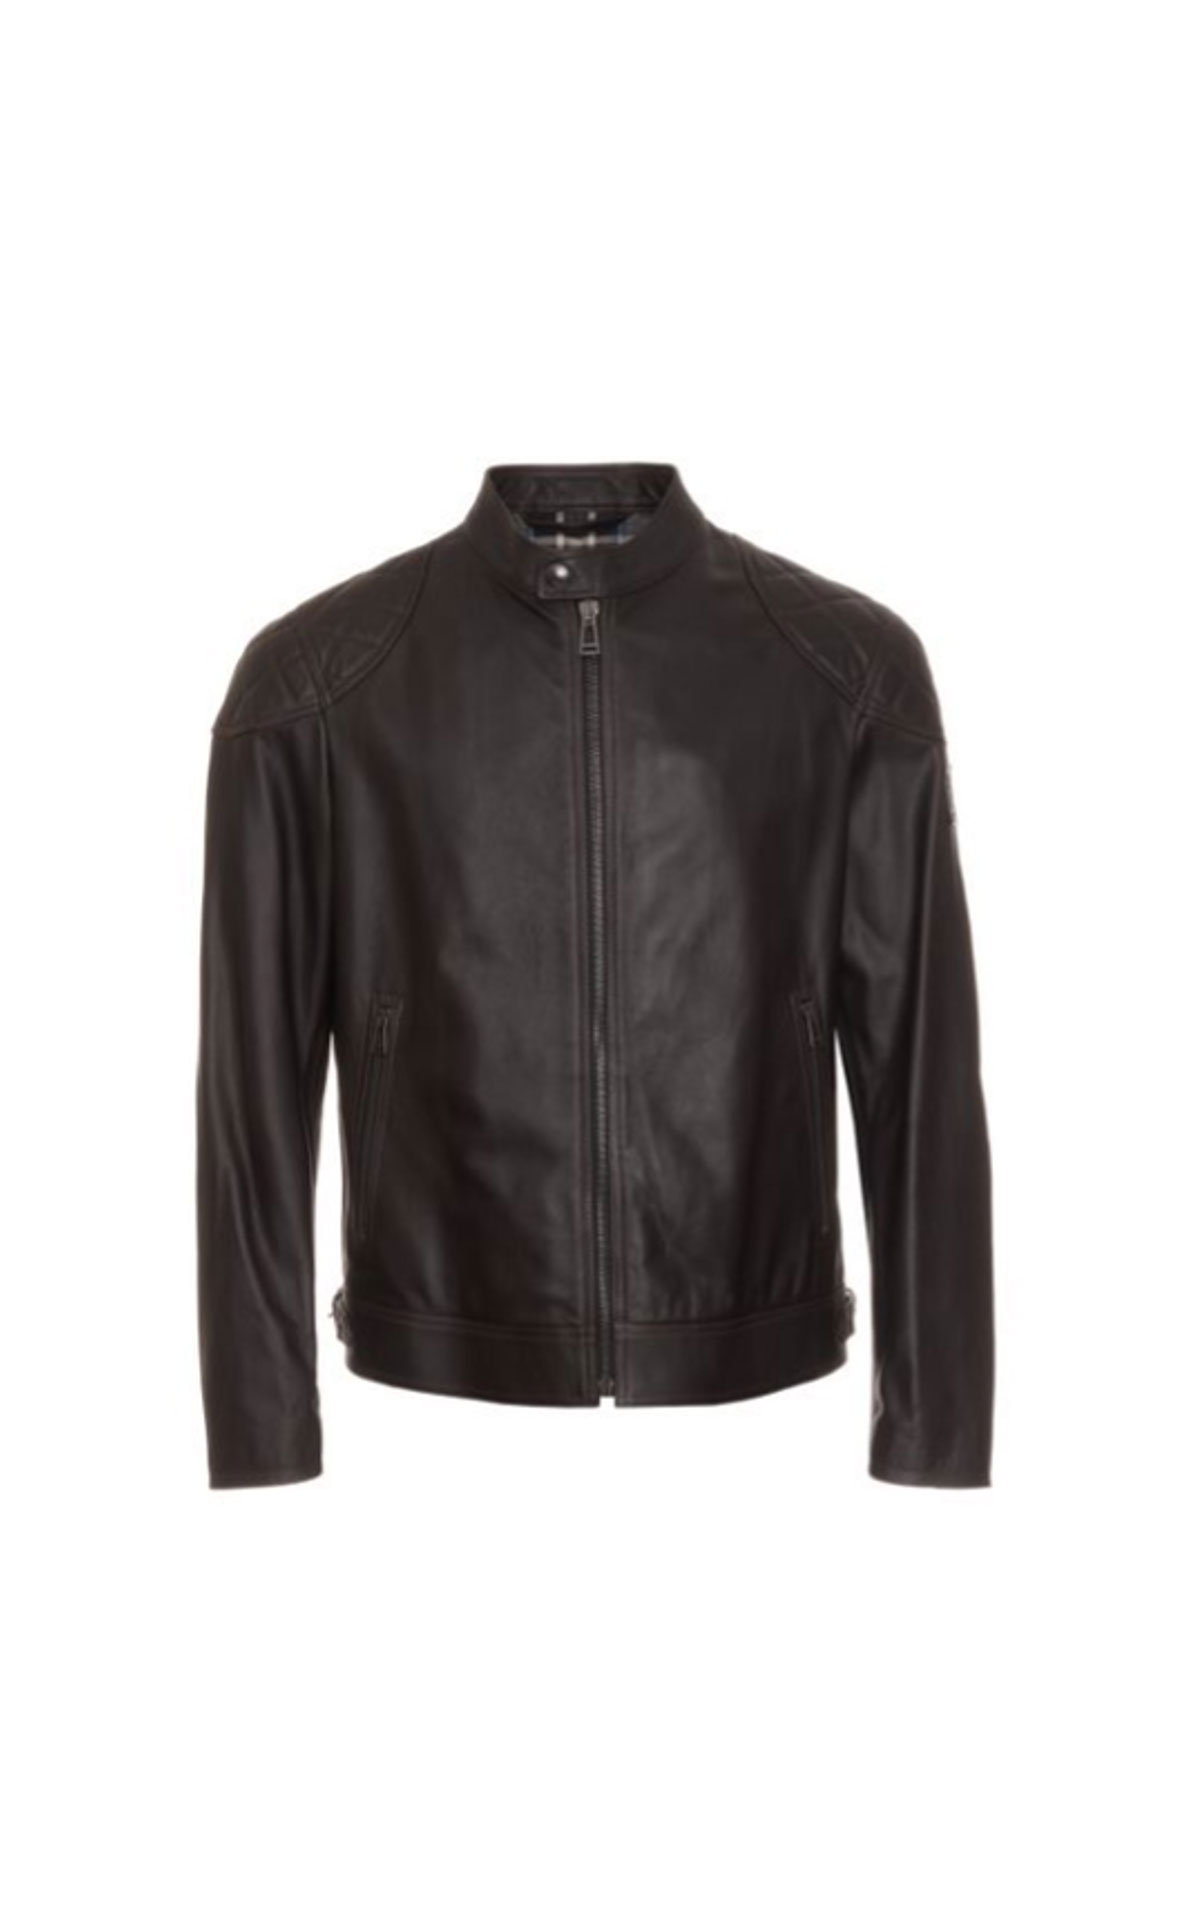 Belstaff Marshal jacket from Bicester Village